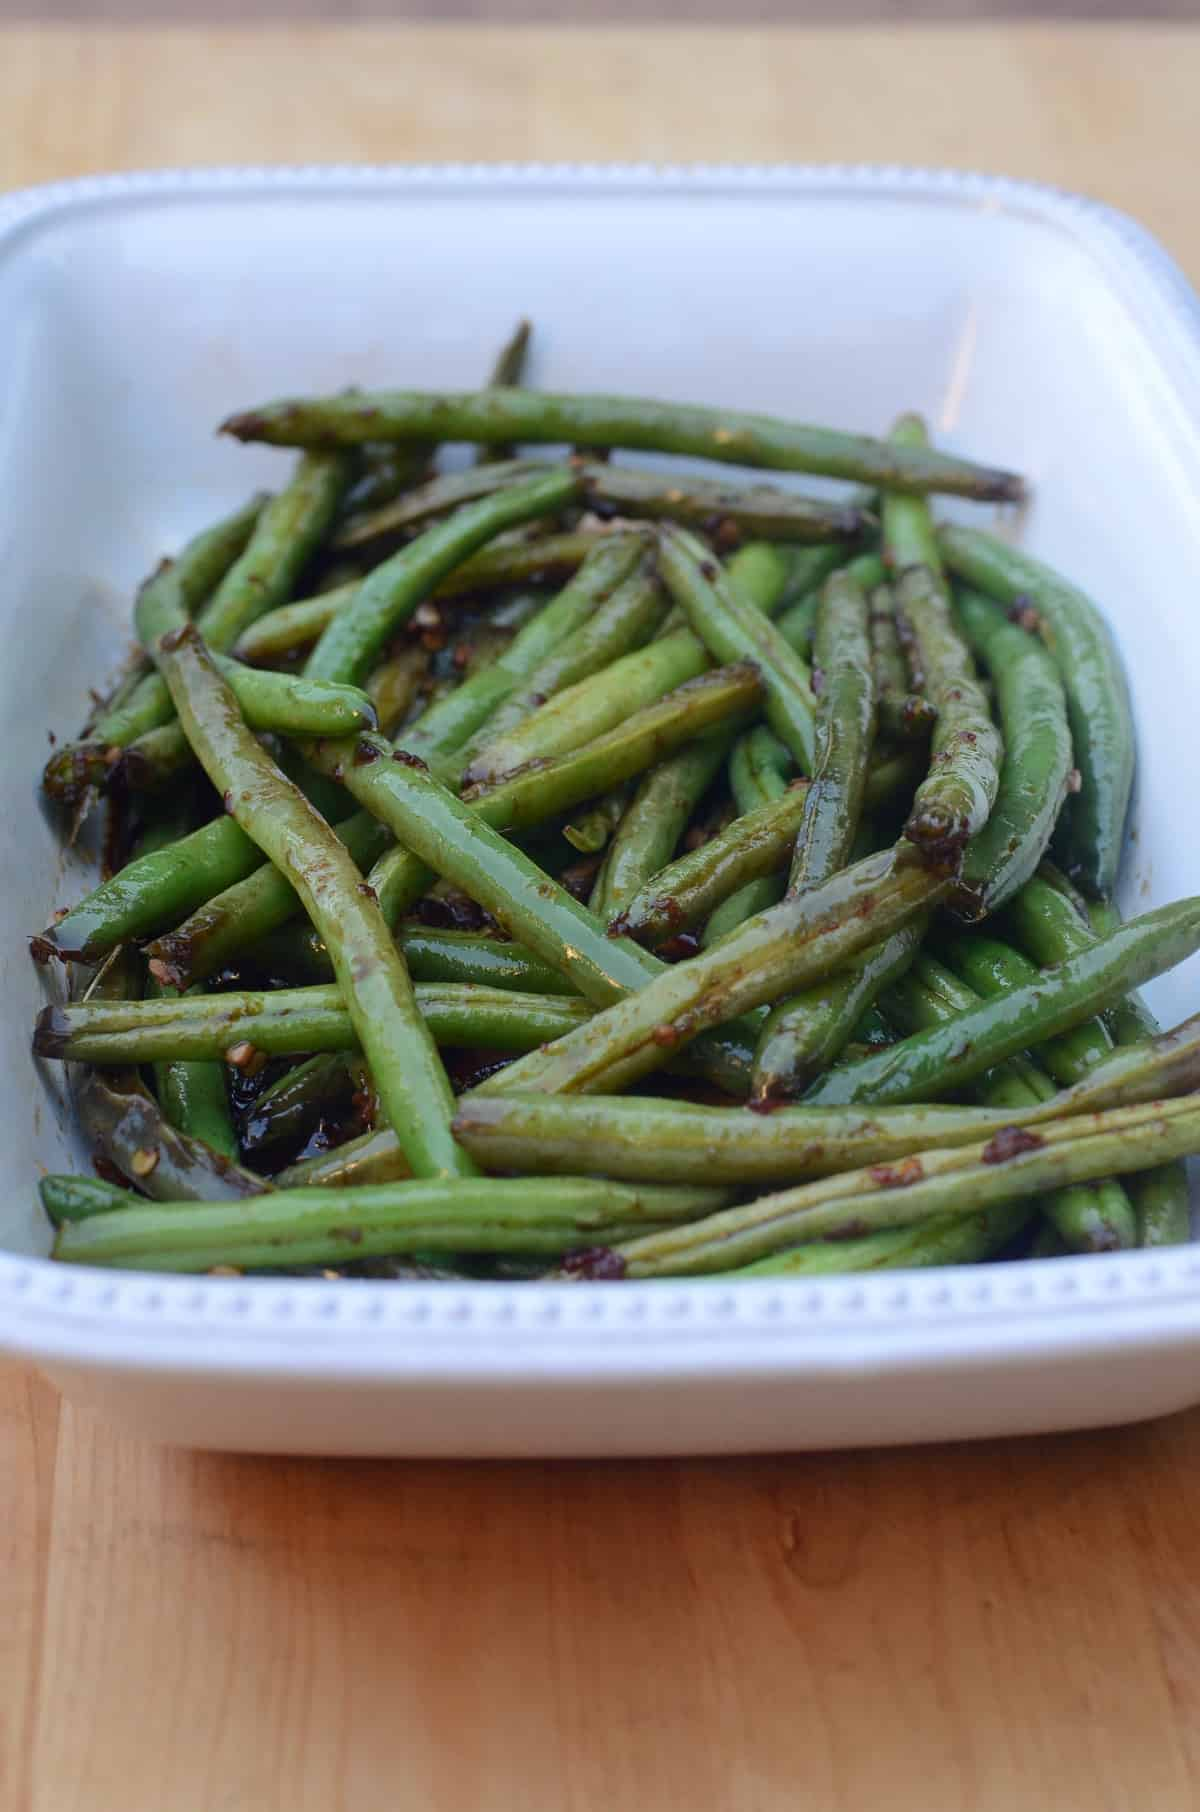 Sweet and Spicy Asian Style Green Beans in a white serving dish.